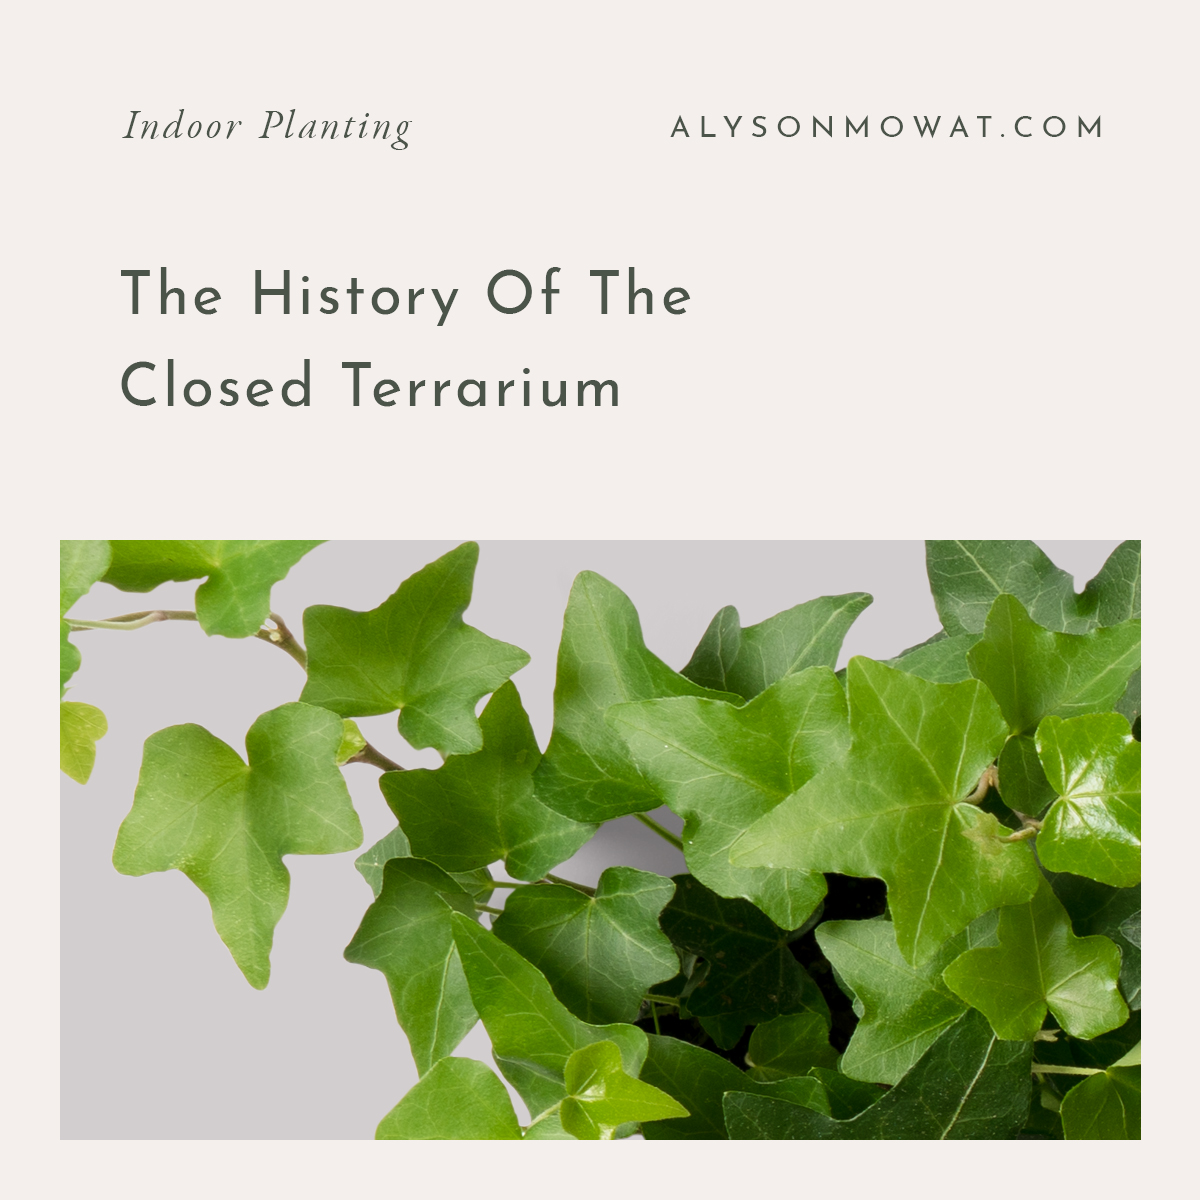 The History of the closed Terrarium